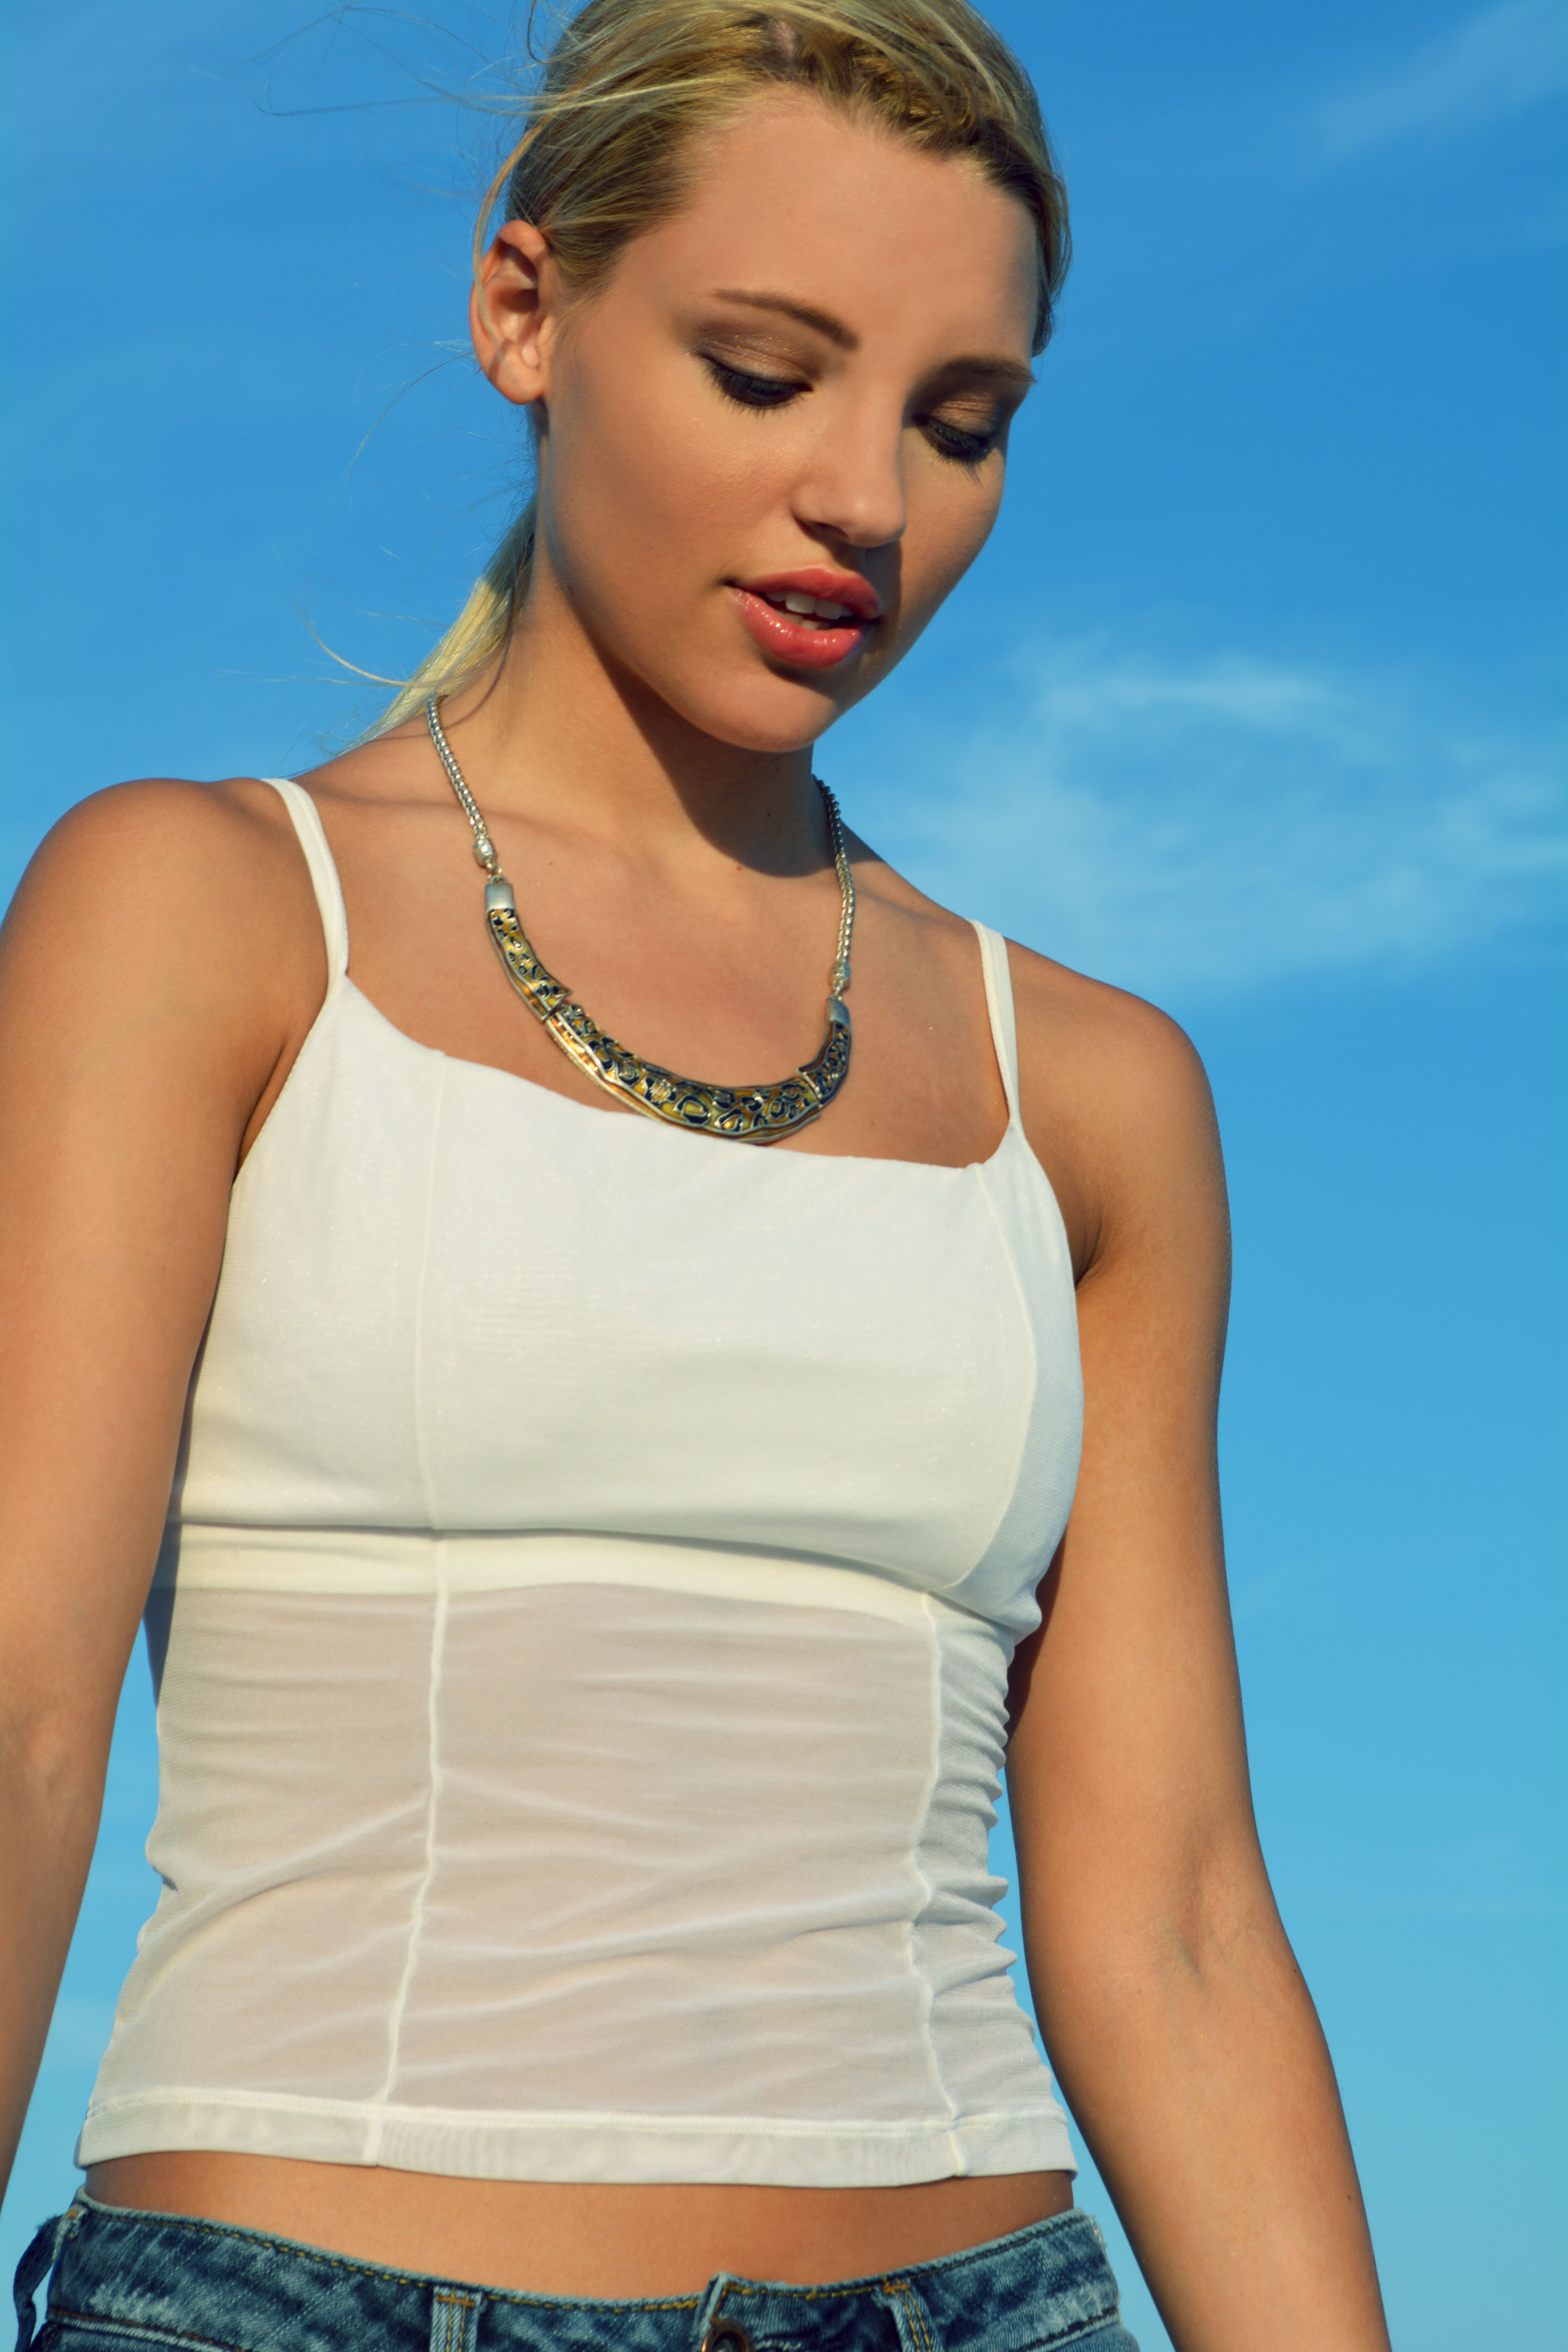 Abgies-Closet_Jeans-White-top-and-Jewelry_Willow_WEB.jpg